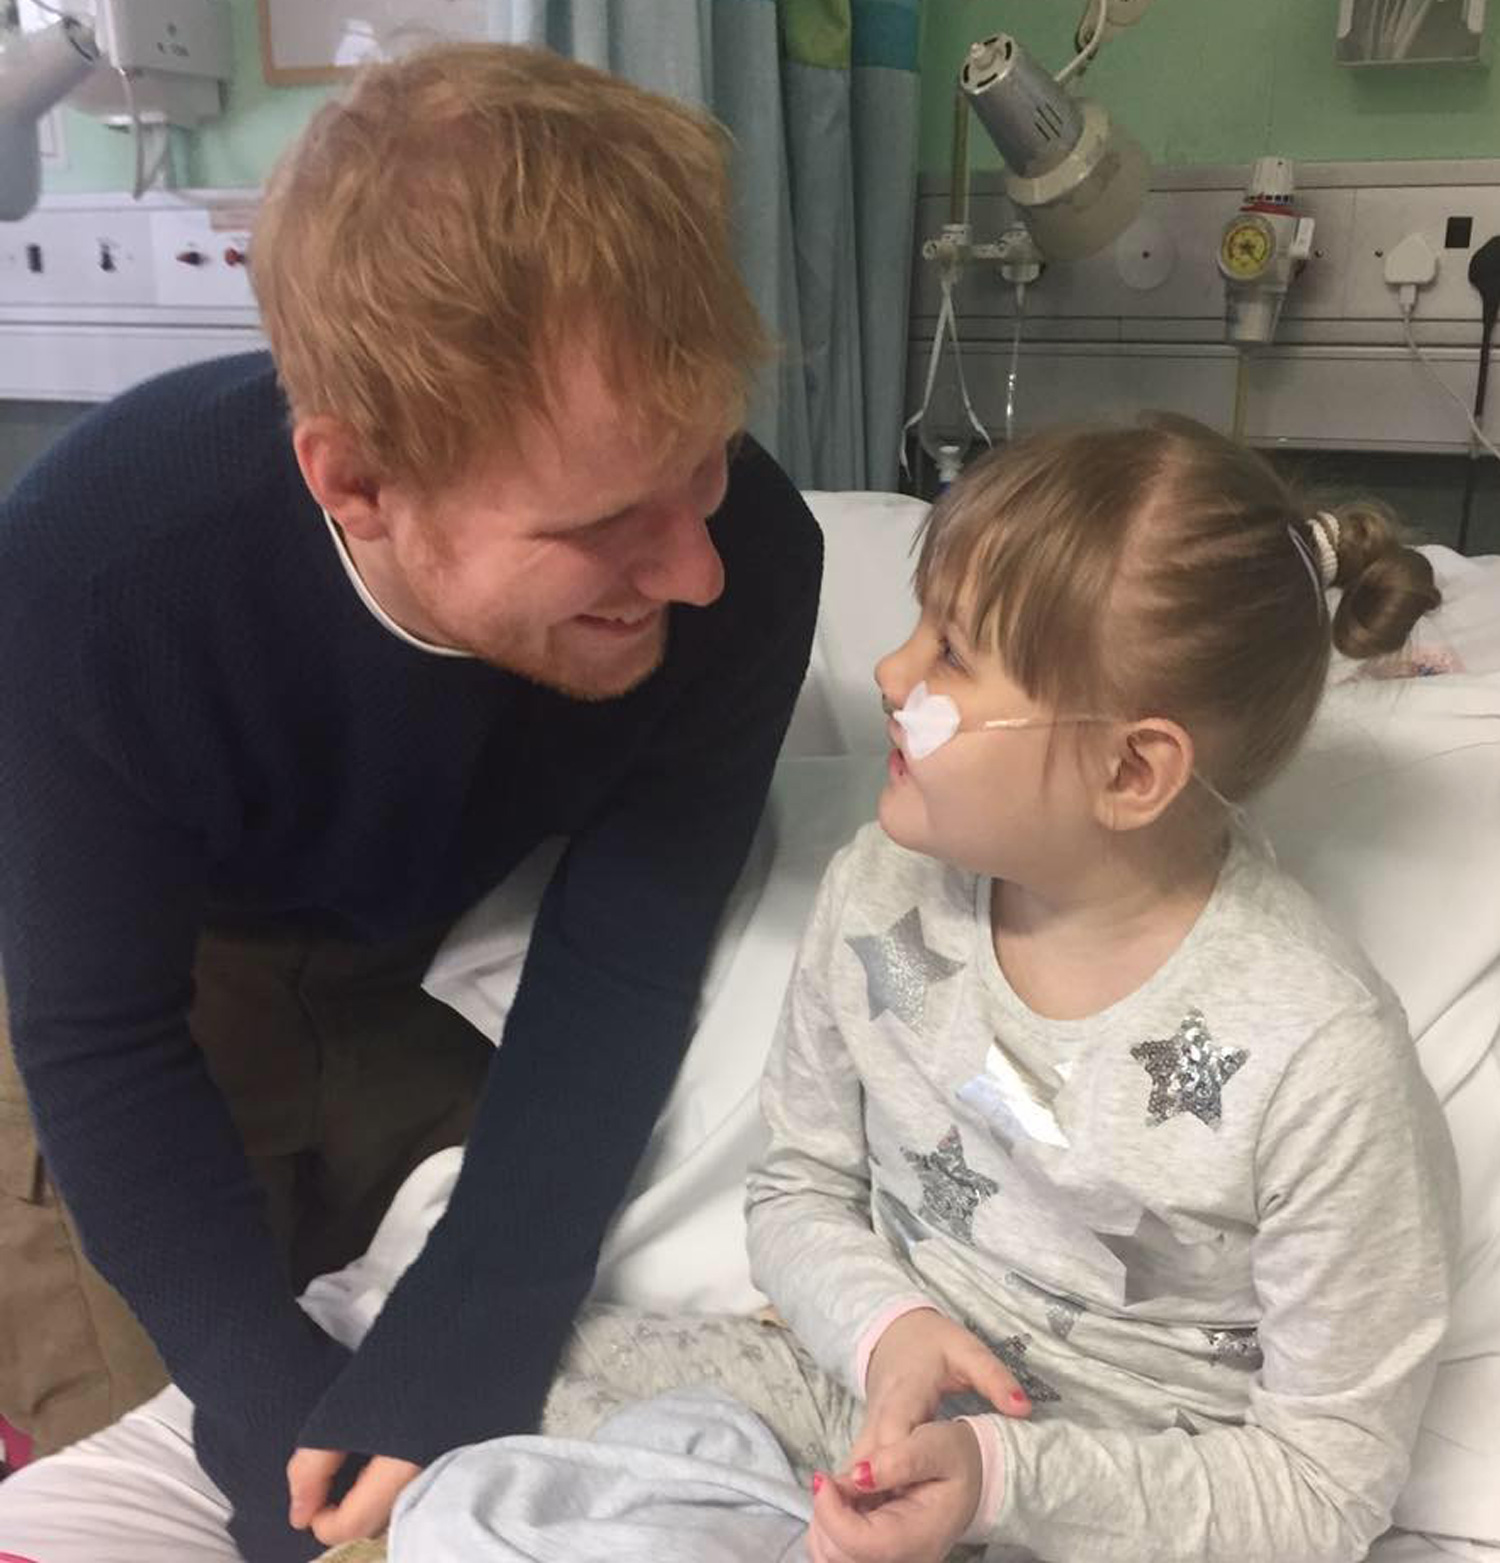 WHEN ED SHEERAN VISITED HIS BIGGEST FAN IN THE HOSPITAL